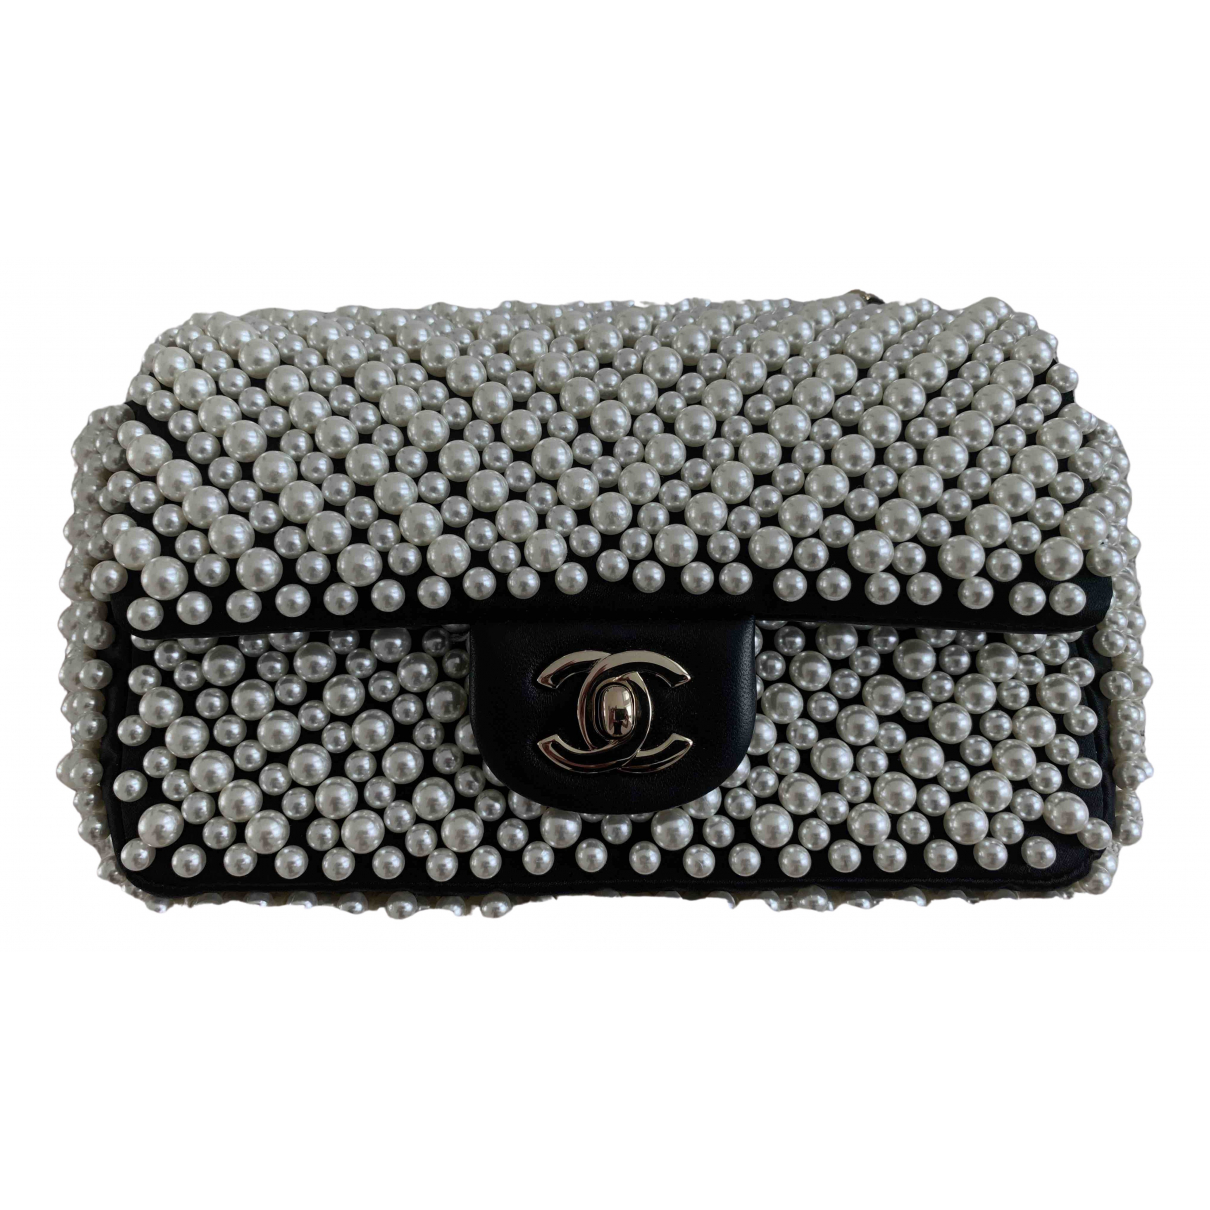 Chanel Timeless/Classique Black Cloth handbag for Women \N